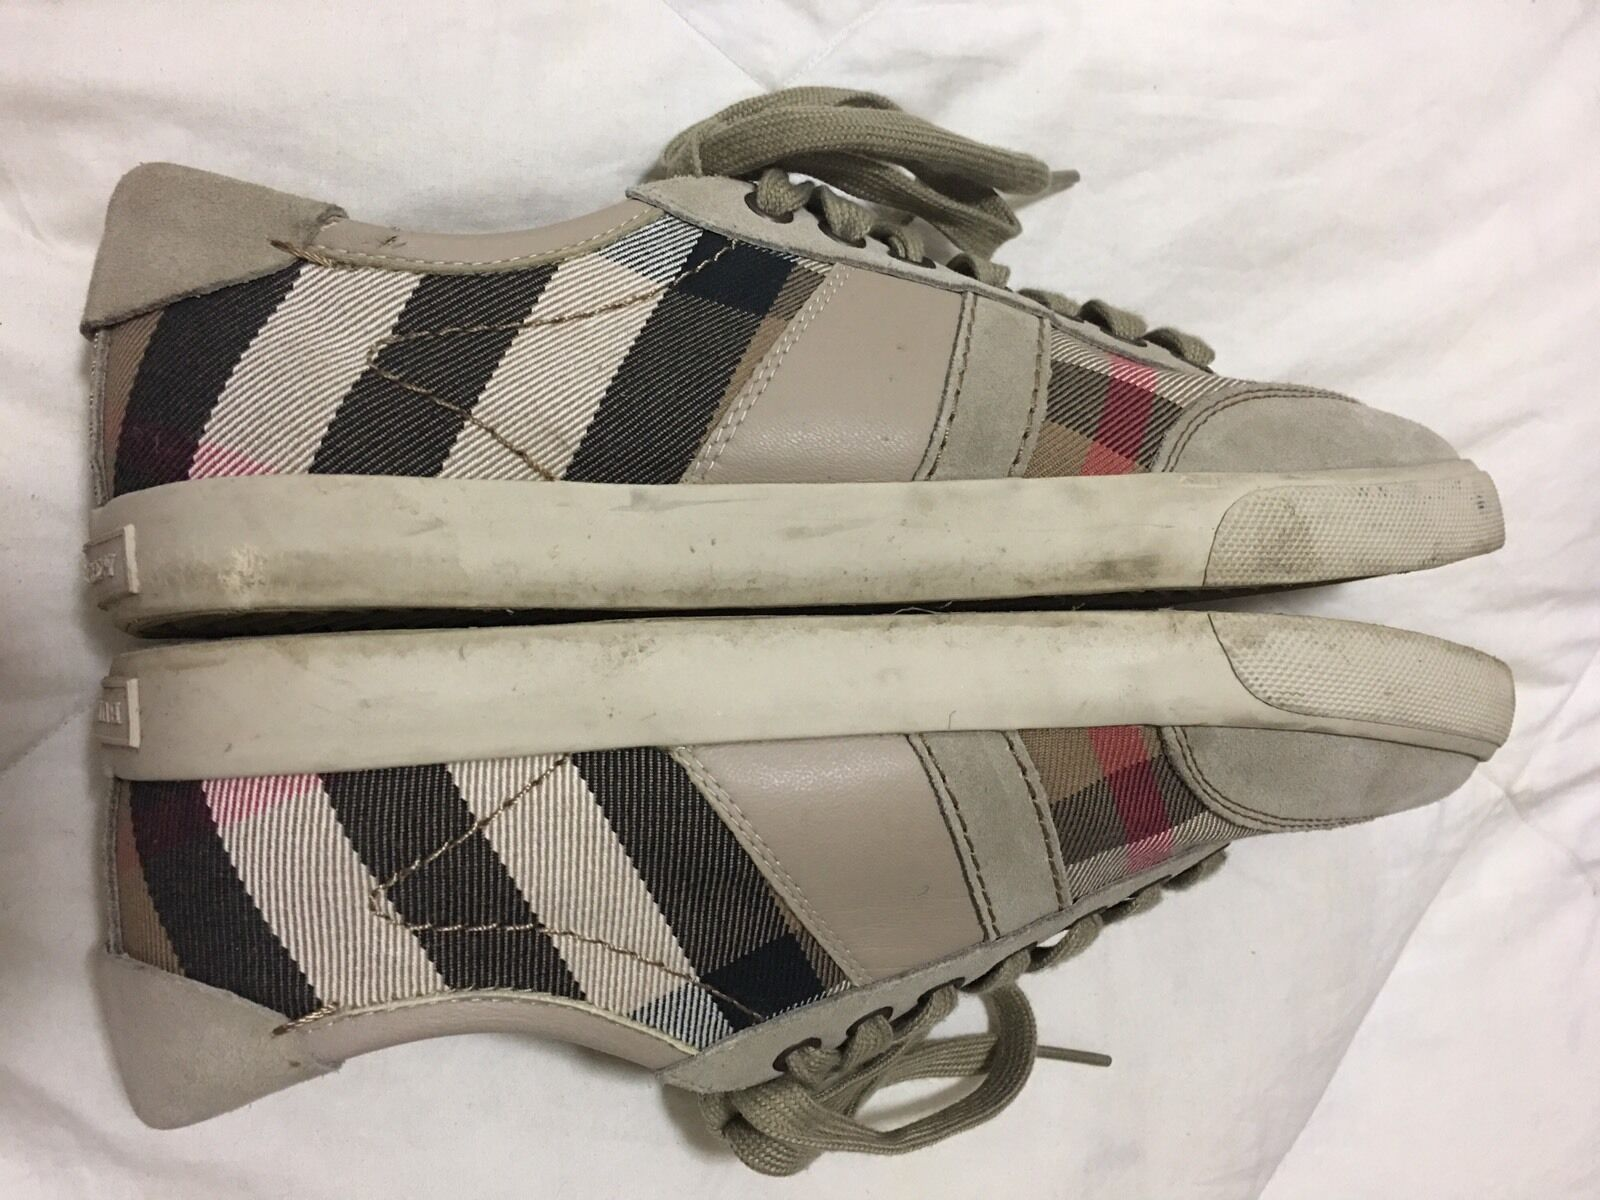 Burberry Burberry Burberry Nova Check Pattern Beige Canvas Suede Casual Low Top Sneakers shoes 41 48aba2